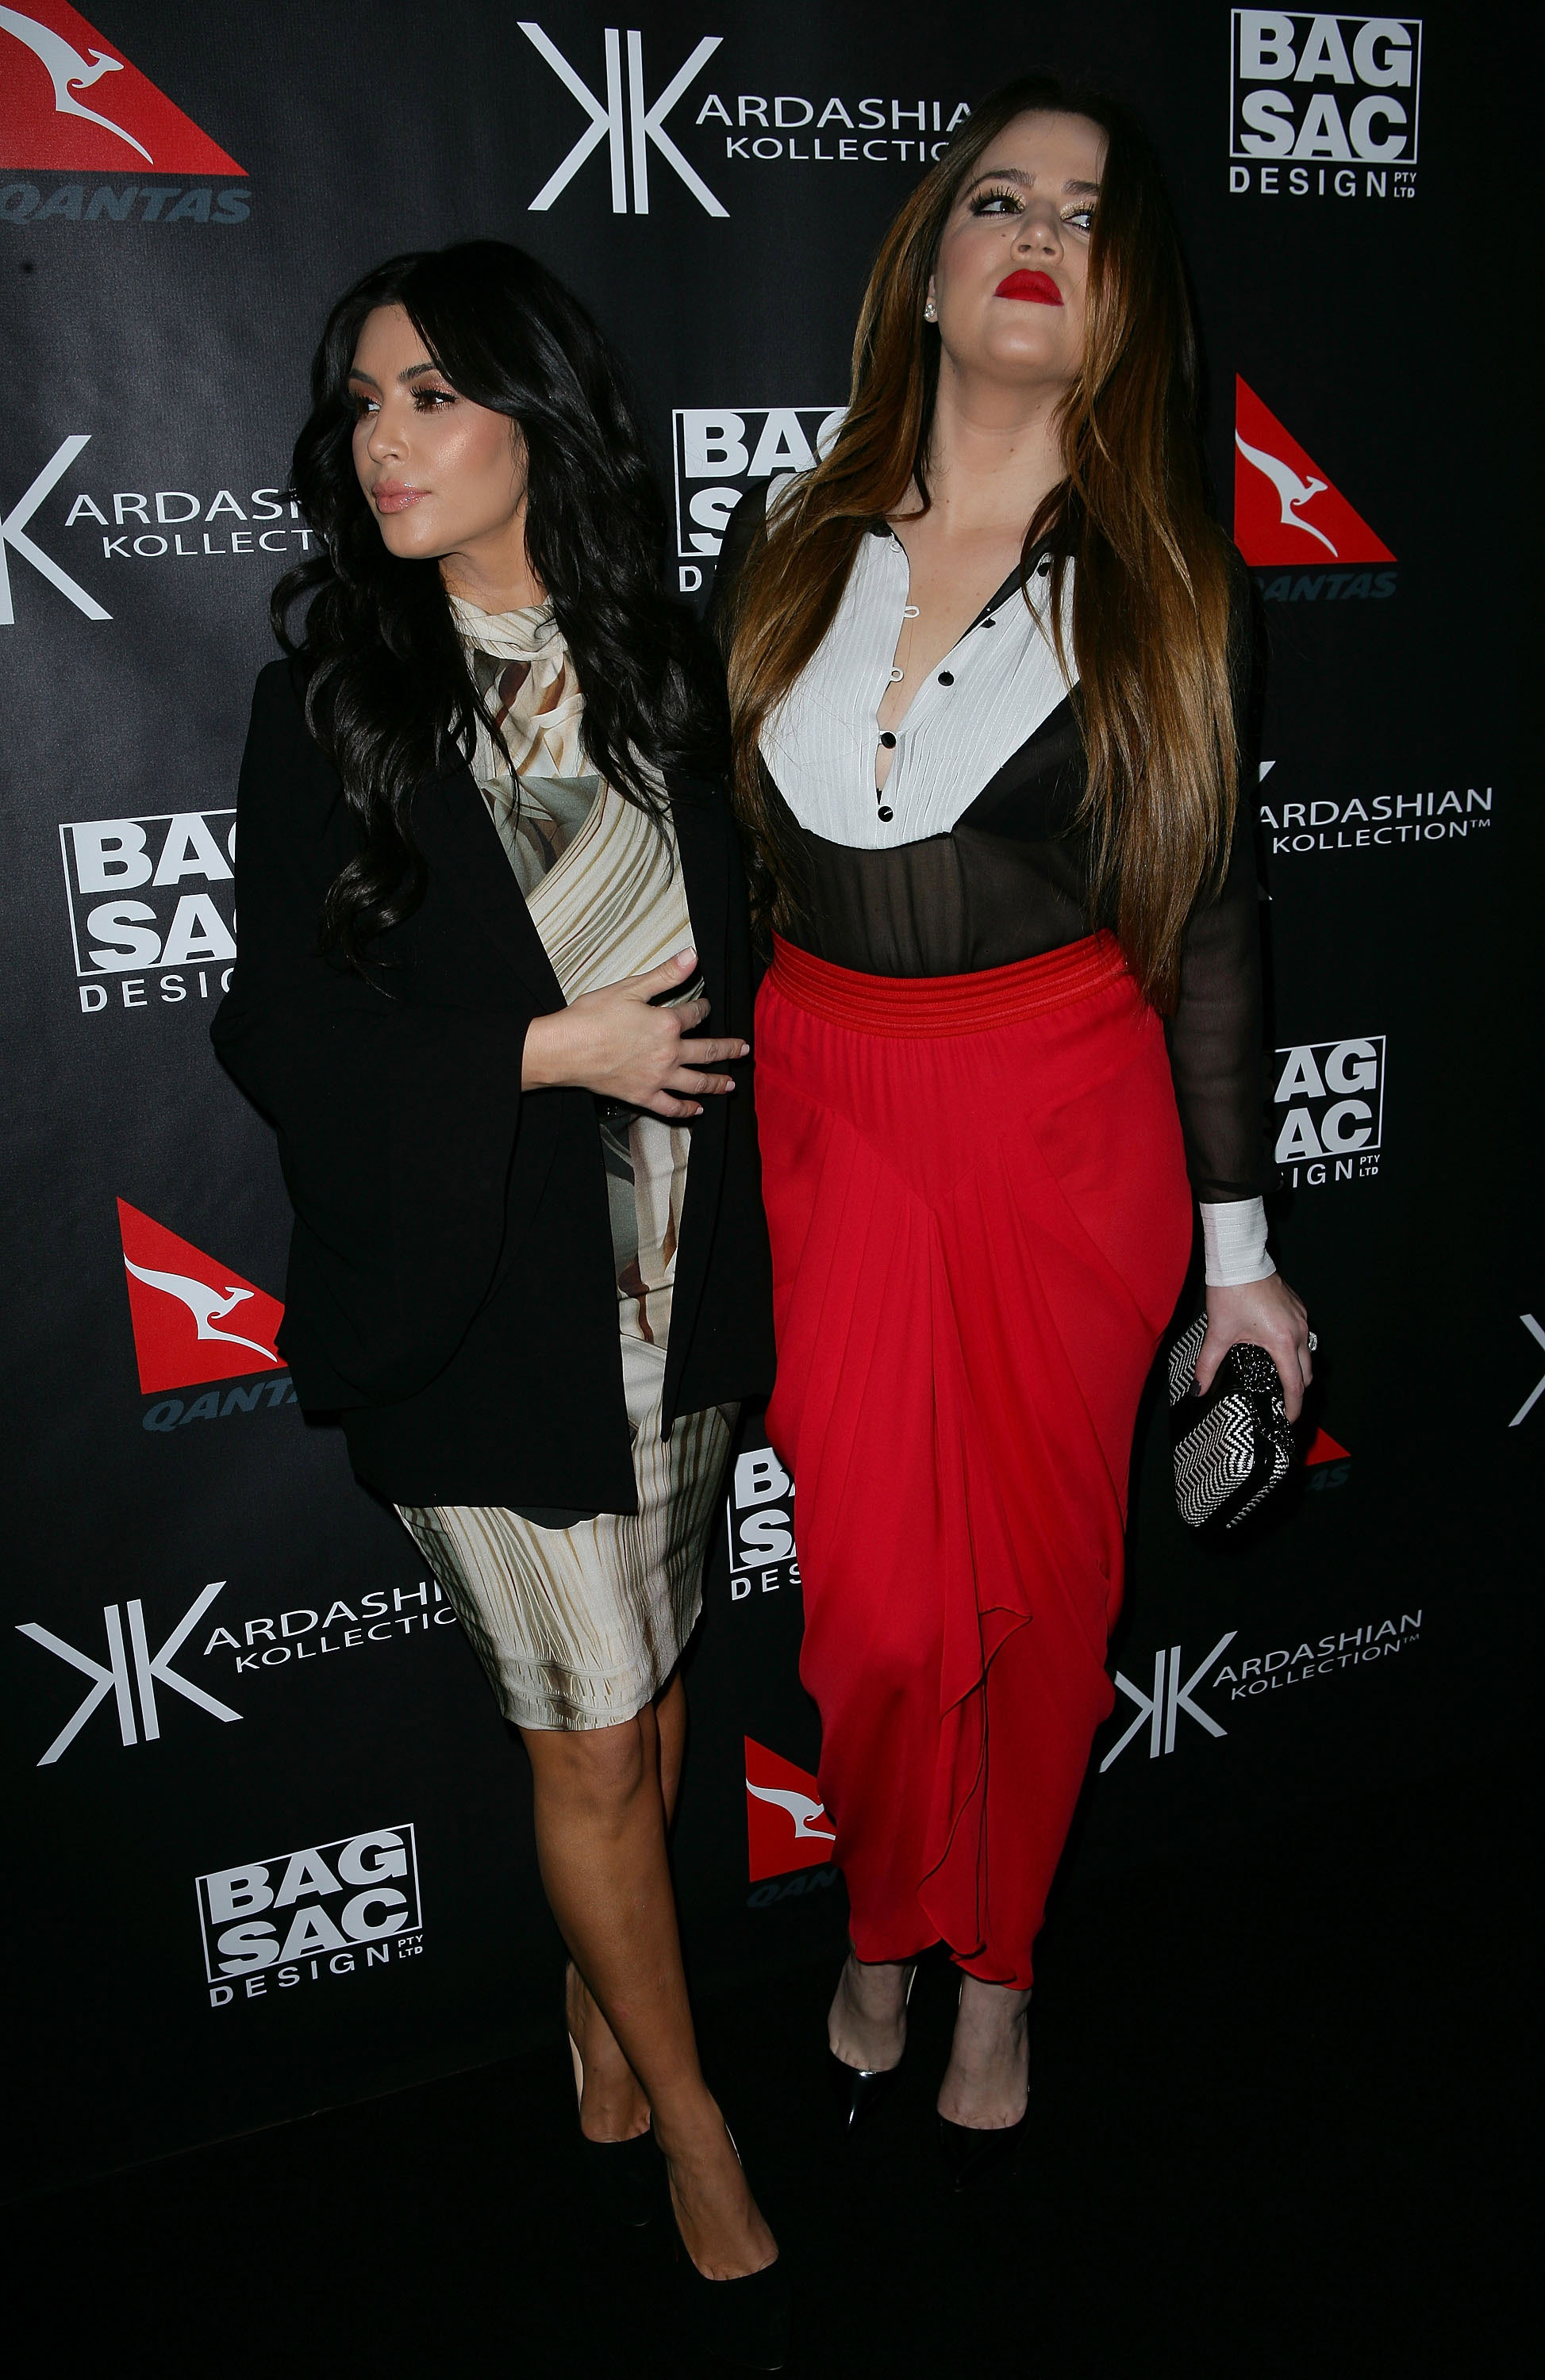 Kim and Khloe Kardashain checked out the scene at their event in Australia.